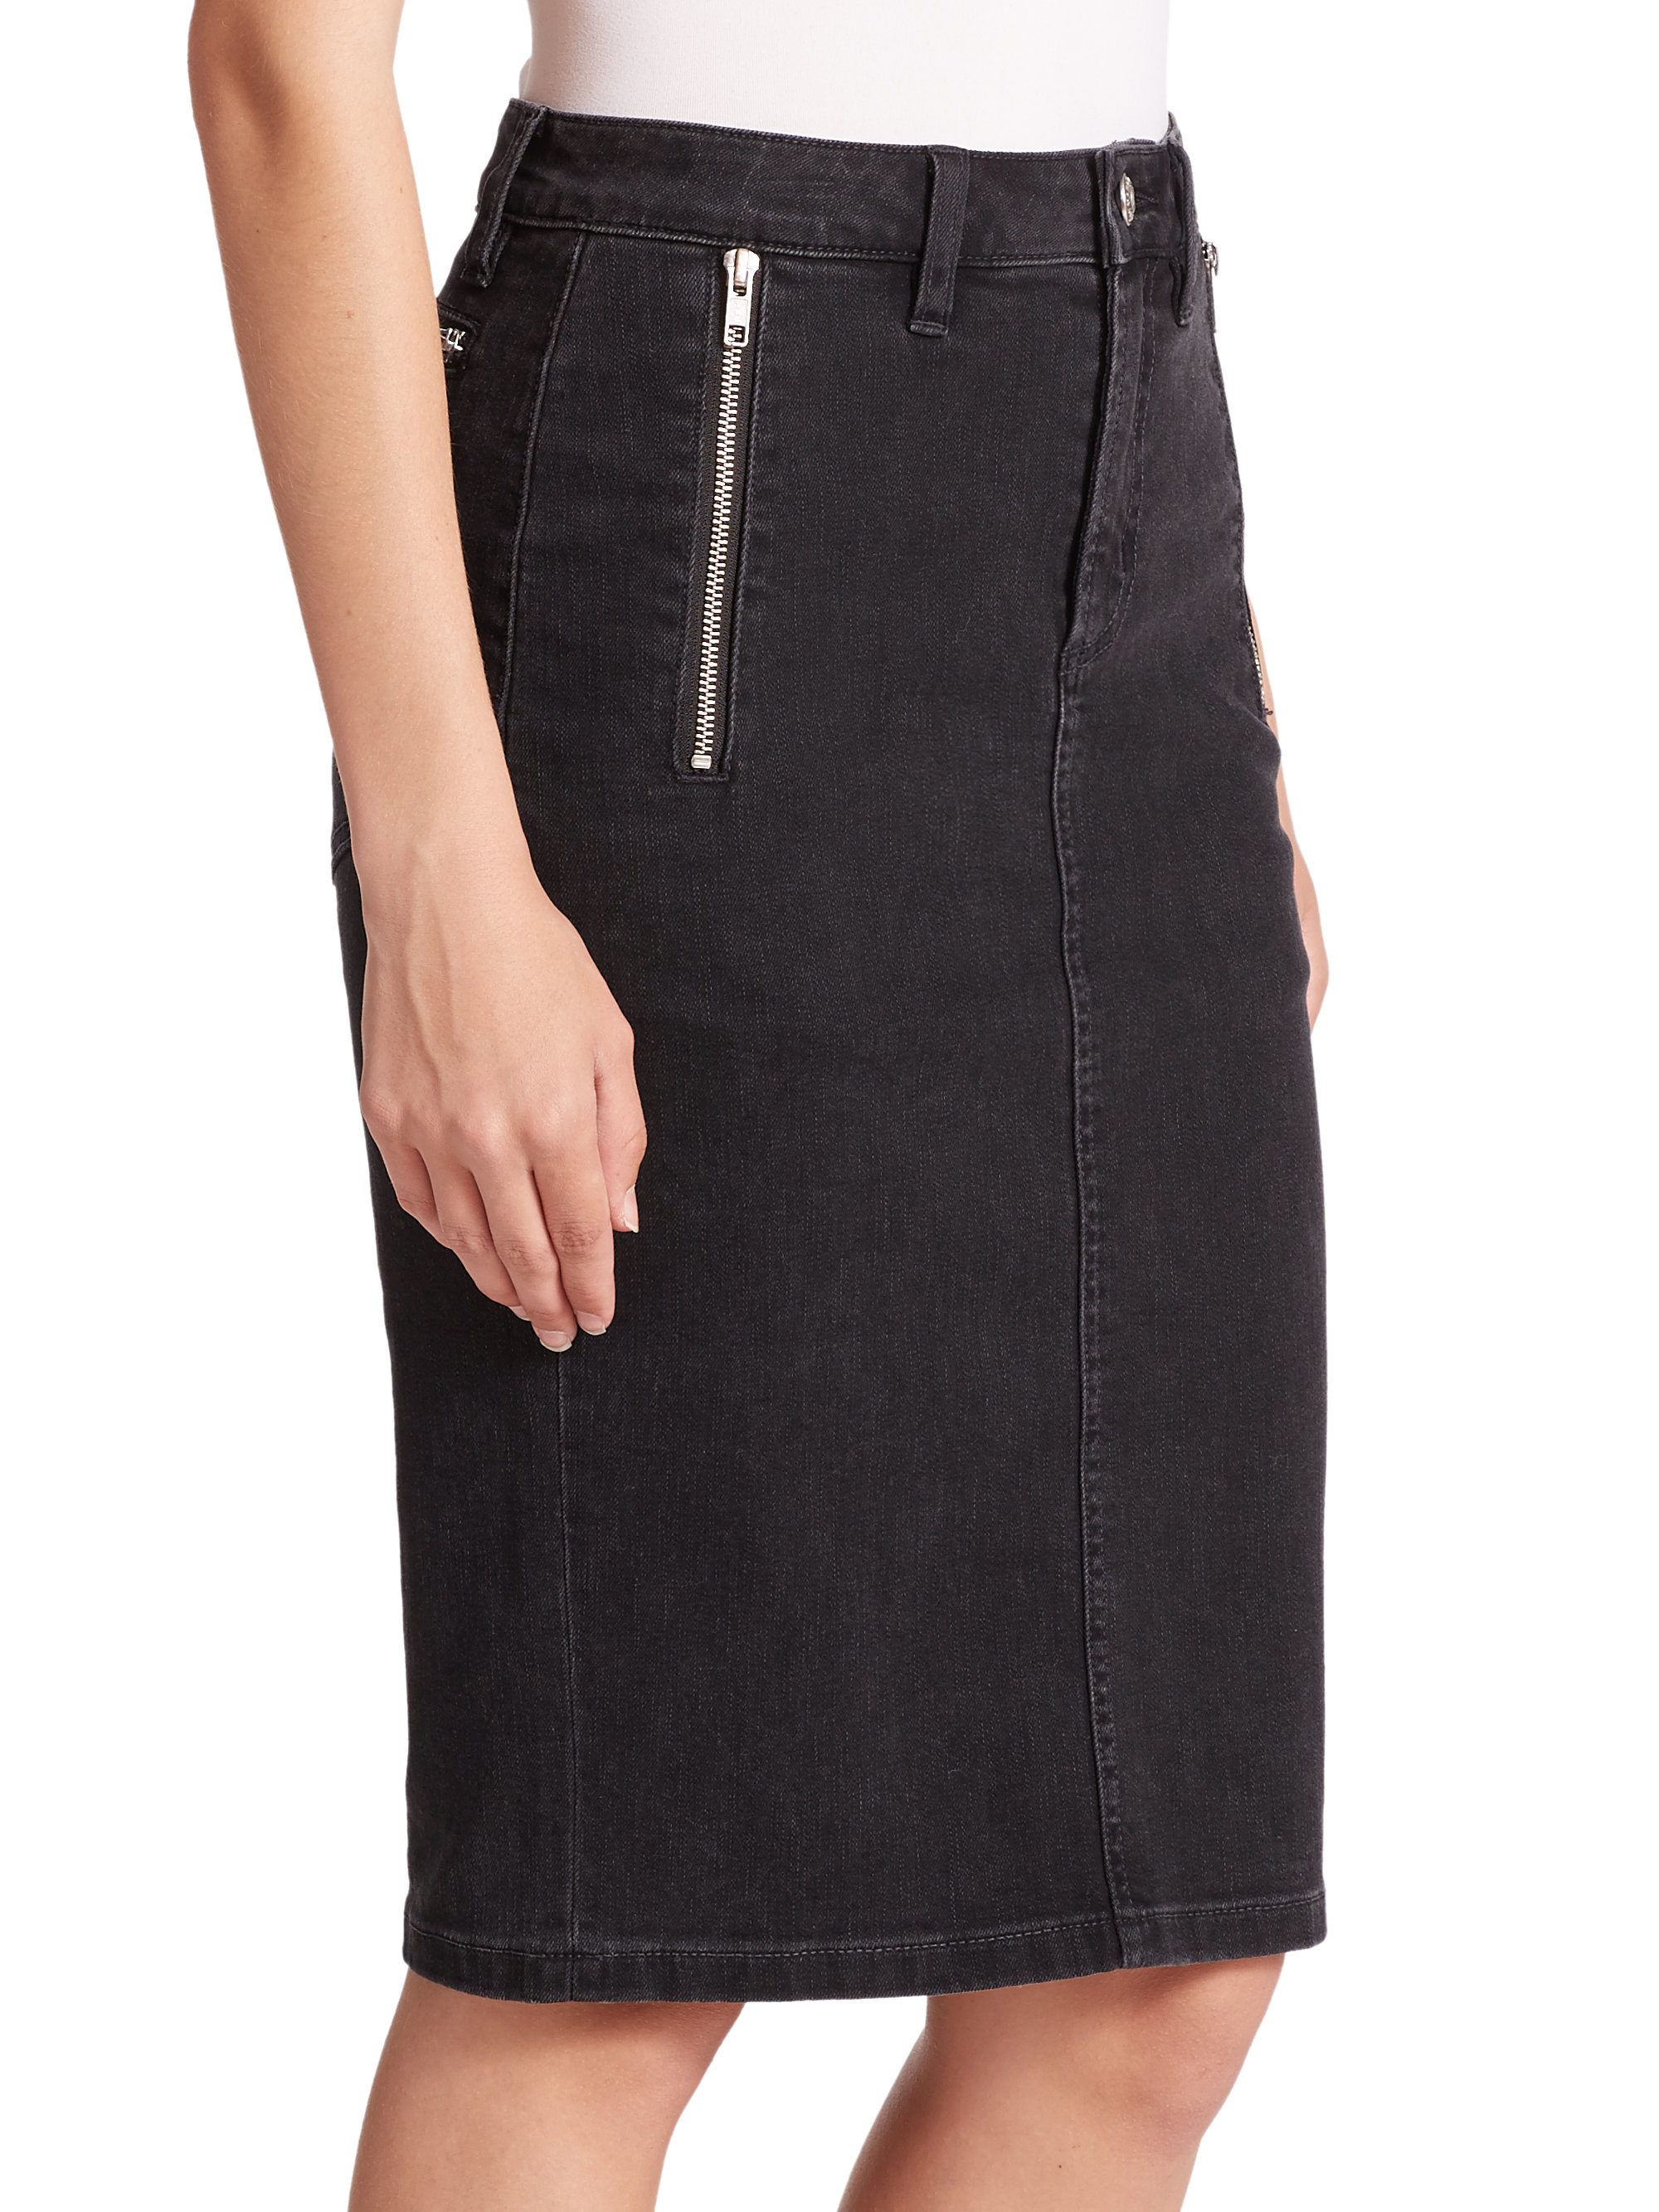 Marc by marc jacobs Stretch-denim Pencil Skirt in Black | Lyst